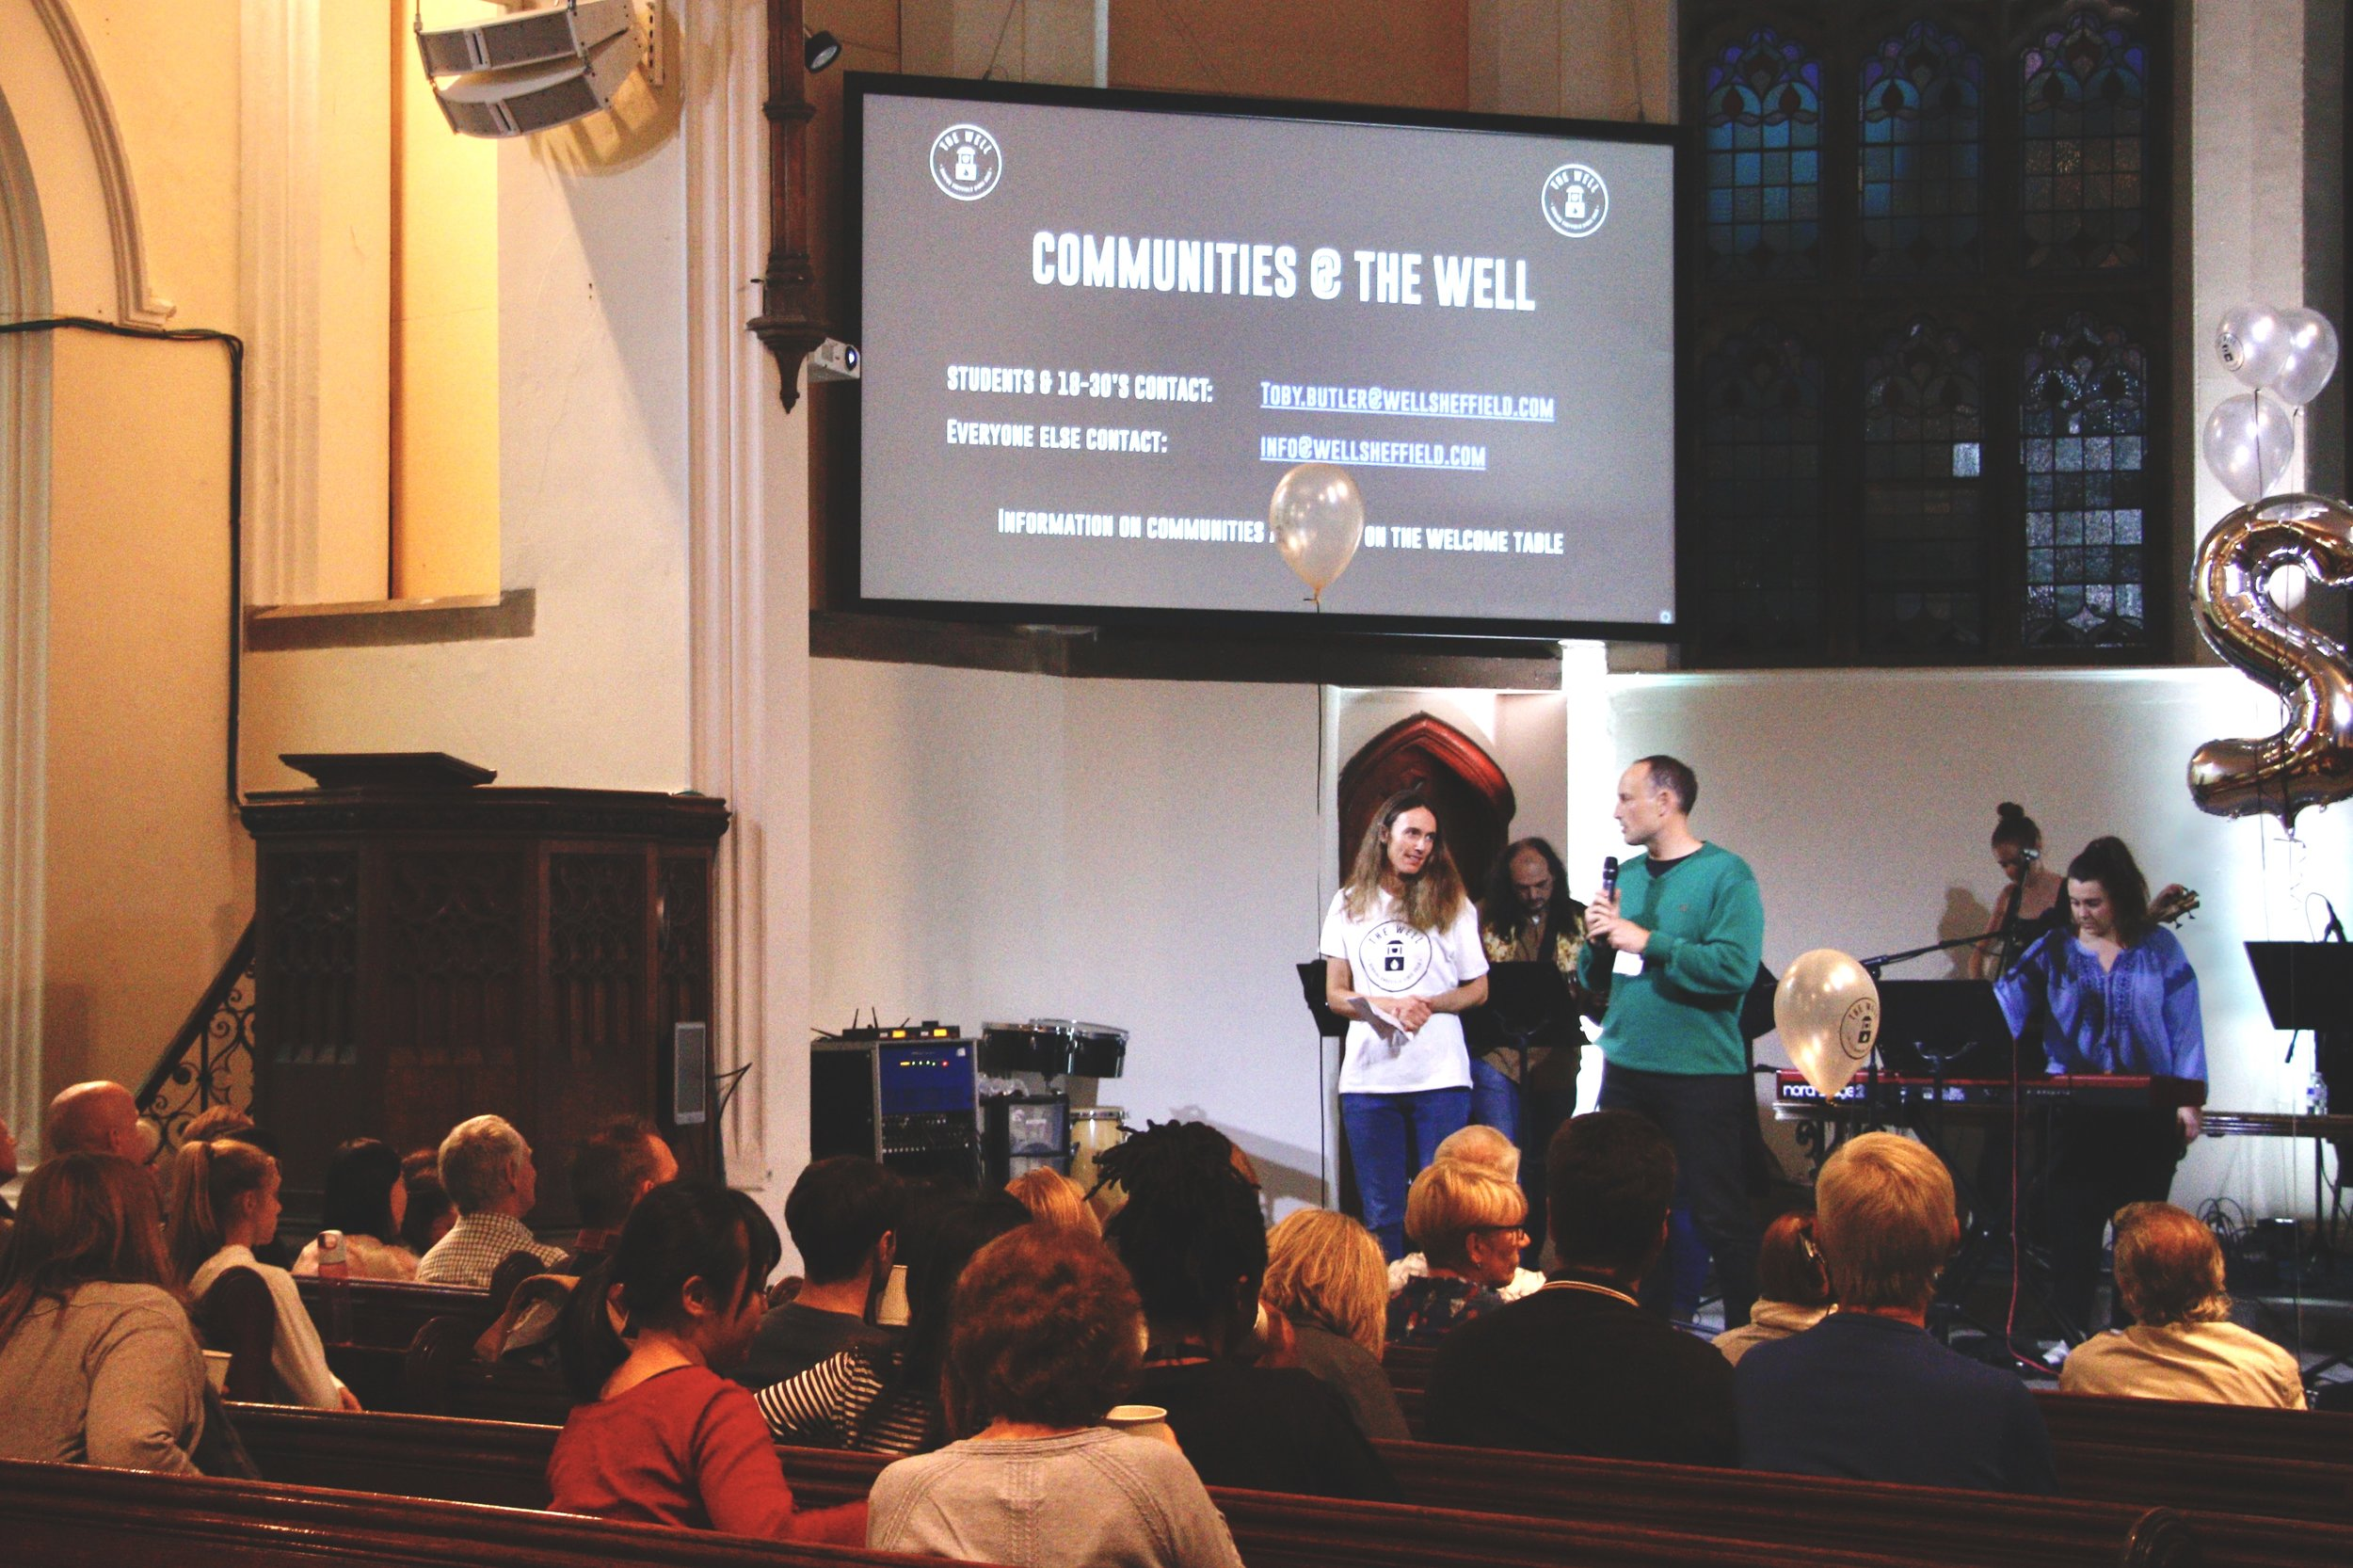 WELCOME - The Sunday gatherings will start with a greeting and possibly some notices about things that are happening at the Well in the coming weeks (there's lots you can get involved in).